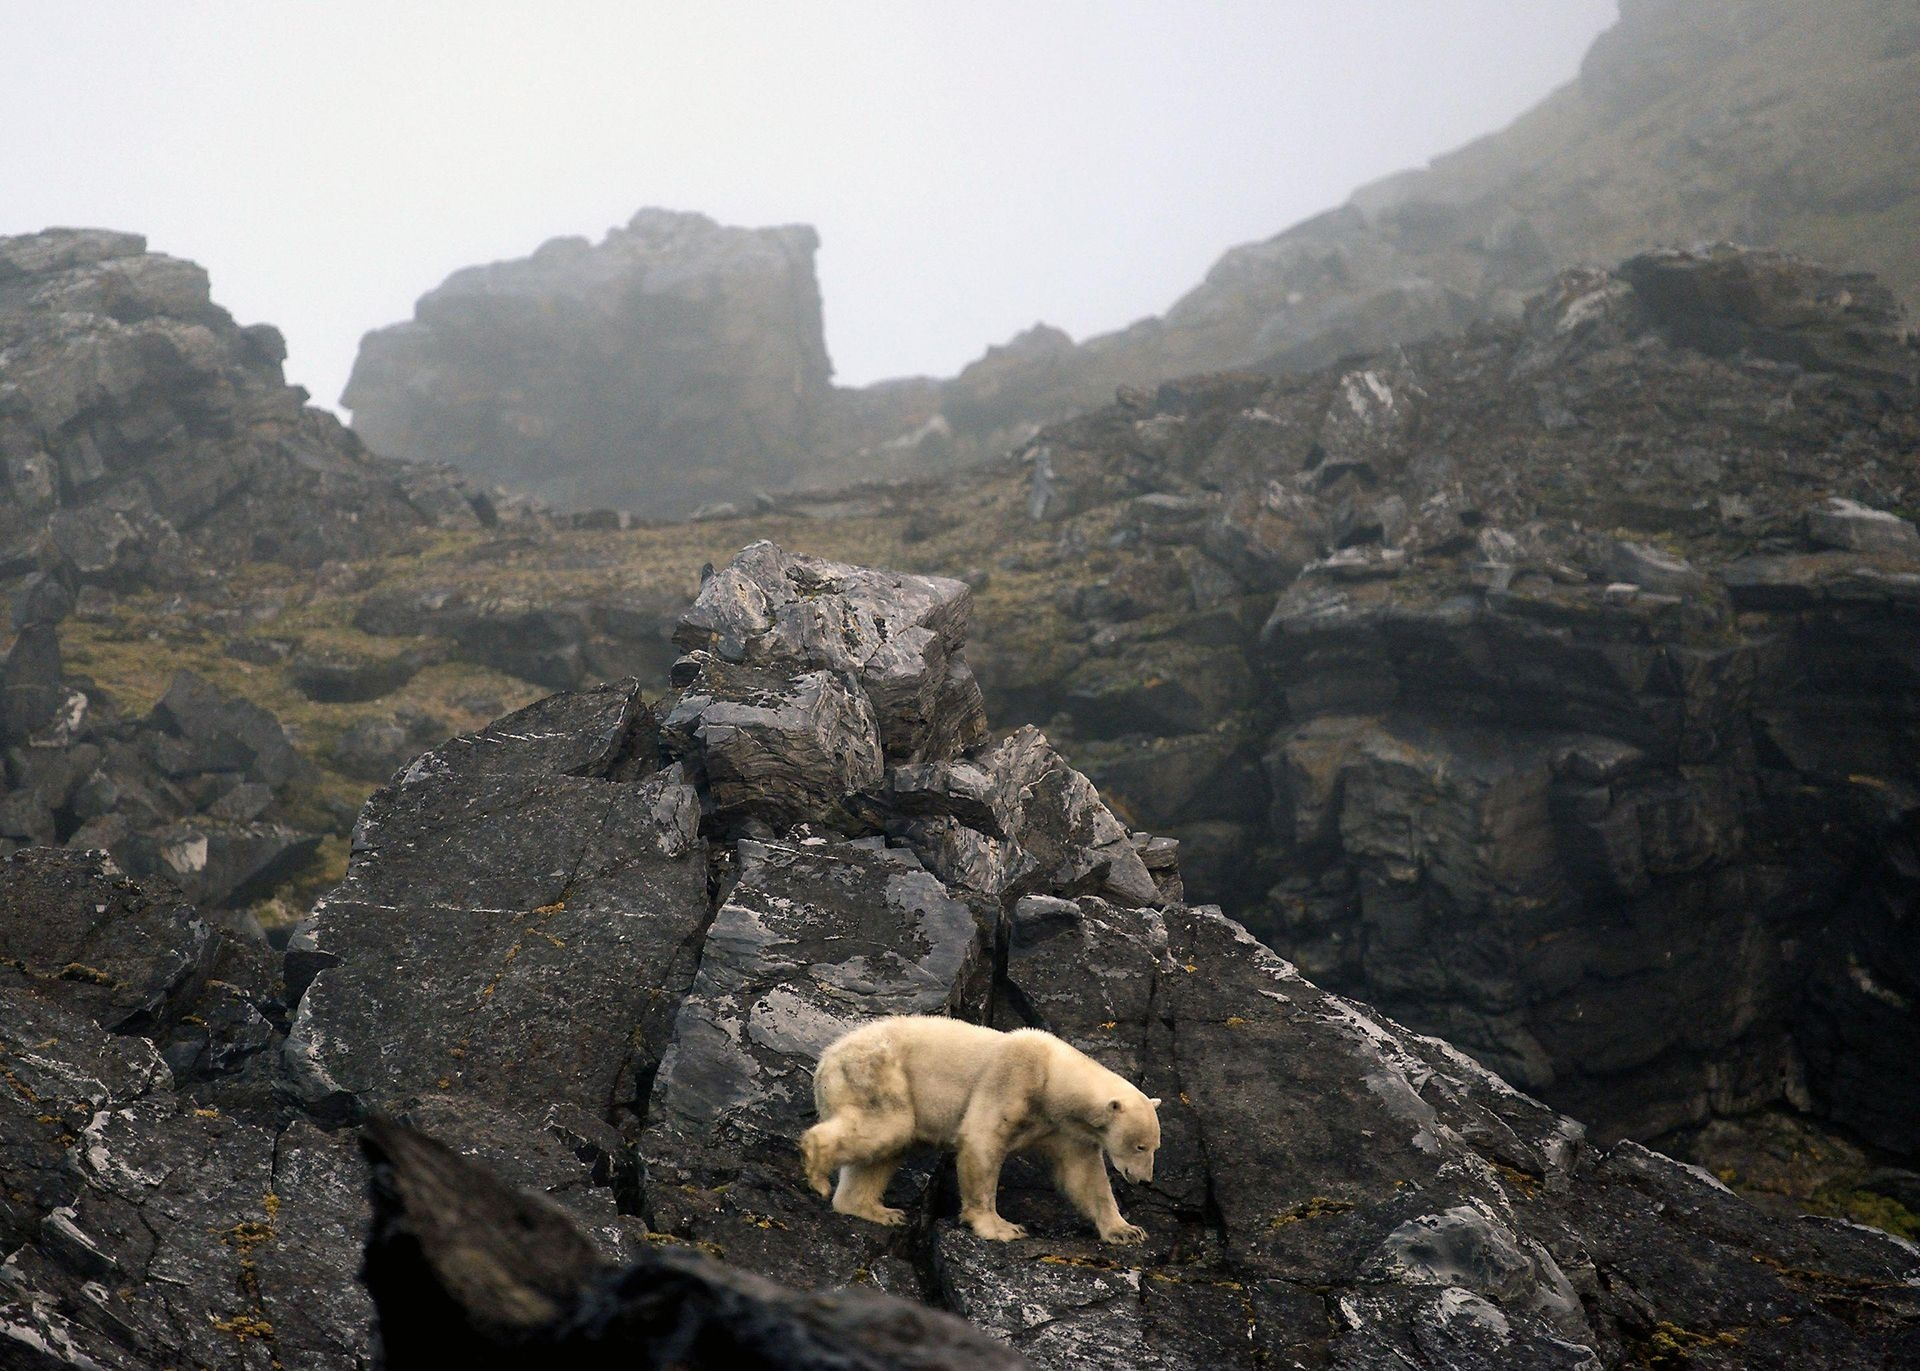 Photograph by Tor Amundsen, National Geographic